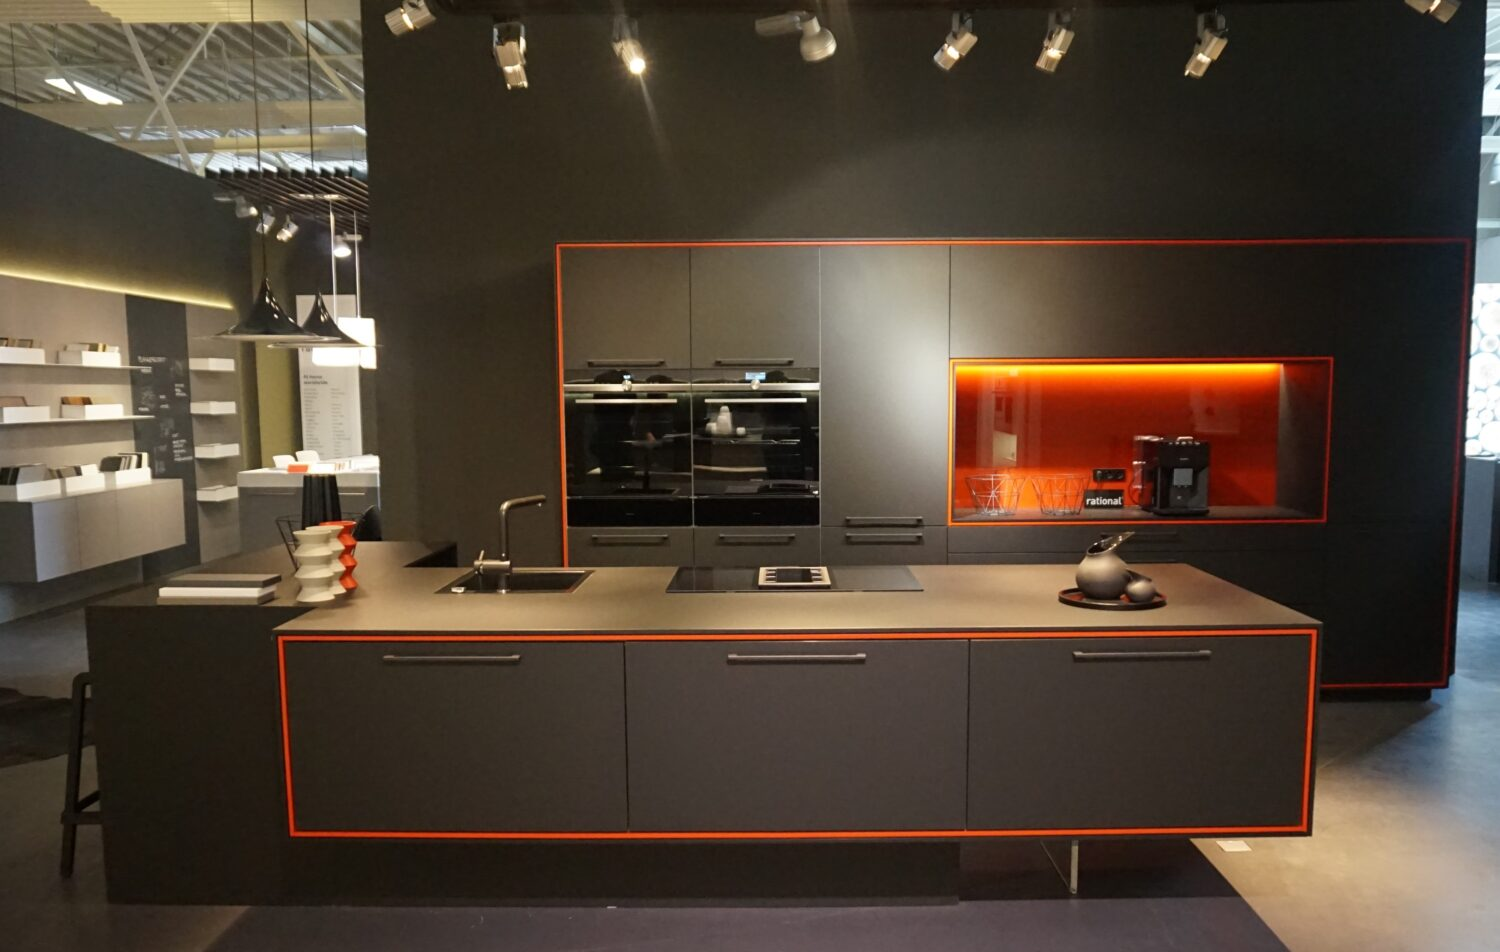 The latest kitchen trends straight from Germany - Spaces